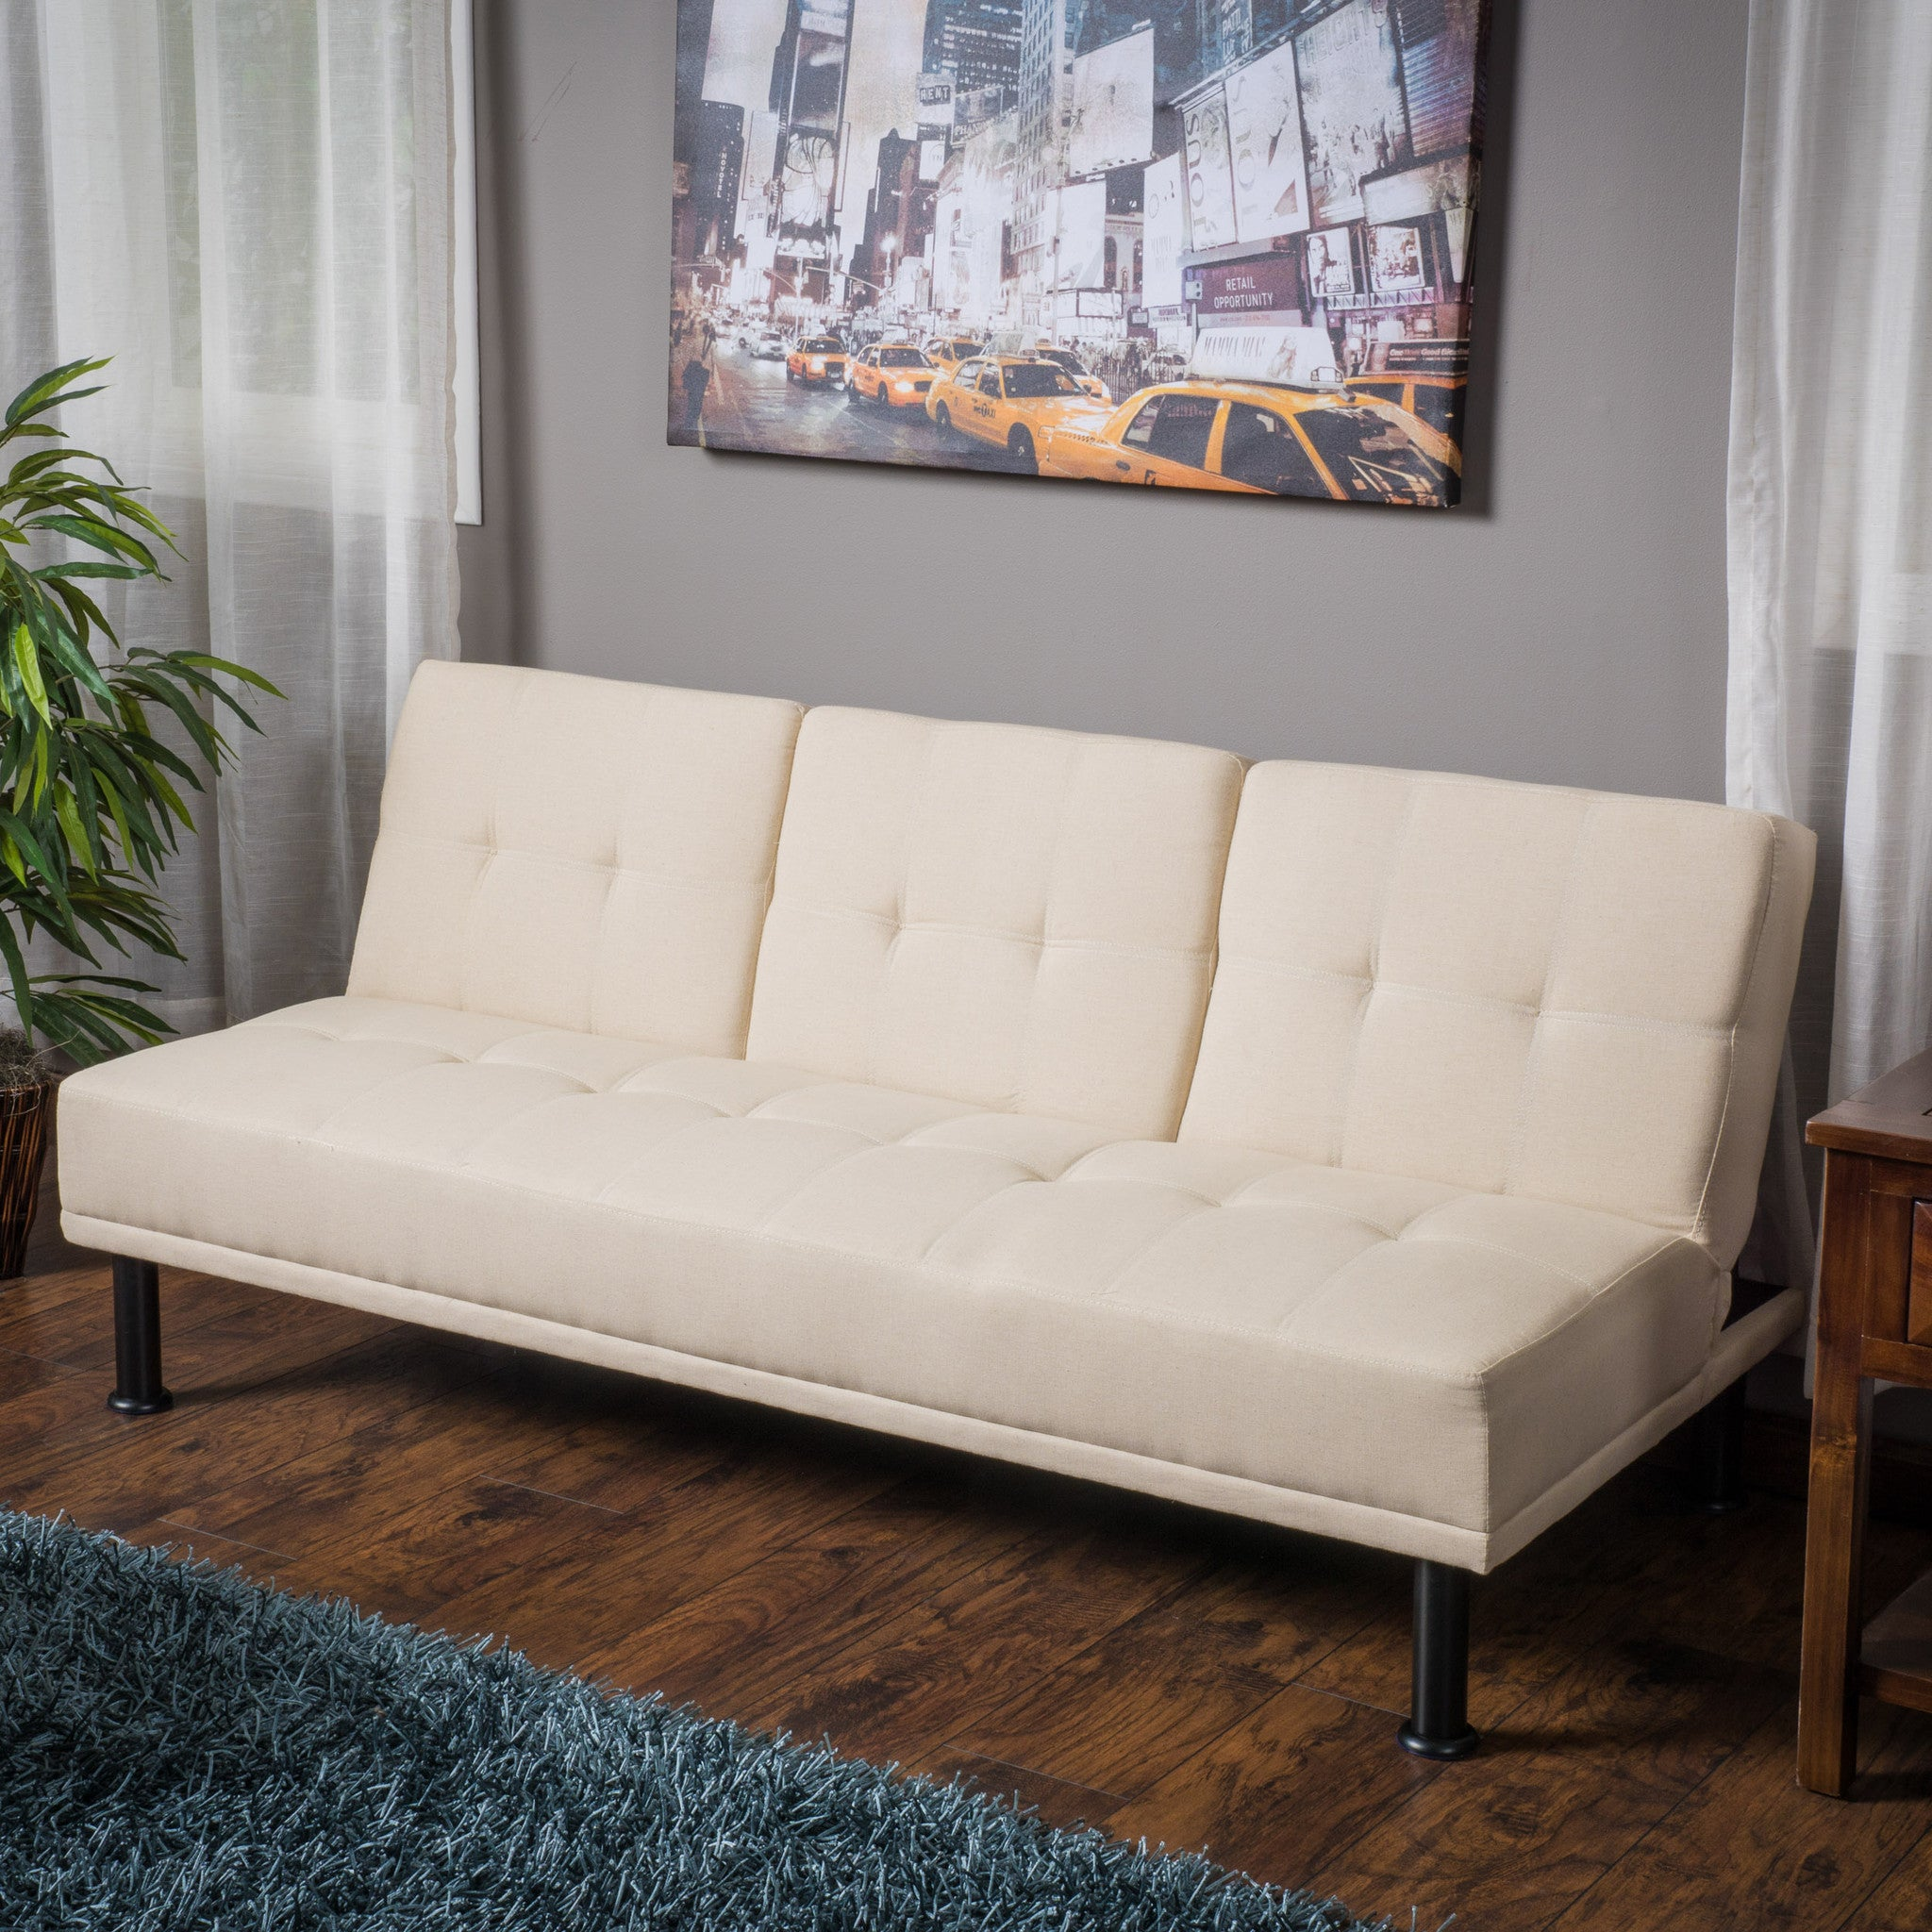 home monarch split ivory futon back image the of redesign different and sofa click leatherlook walmart for clack